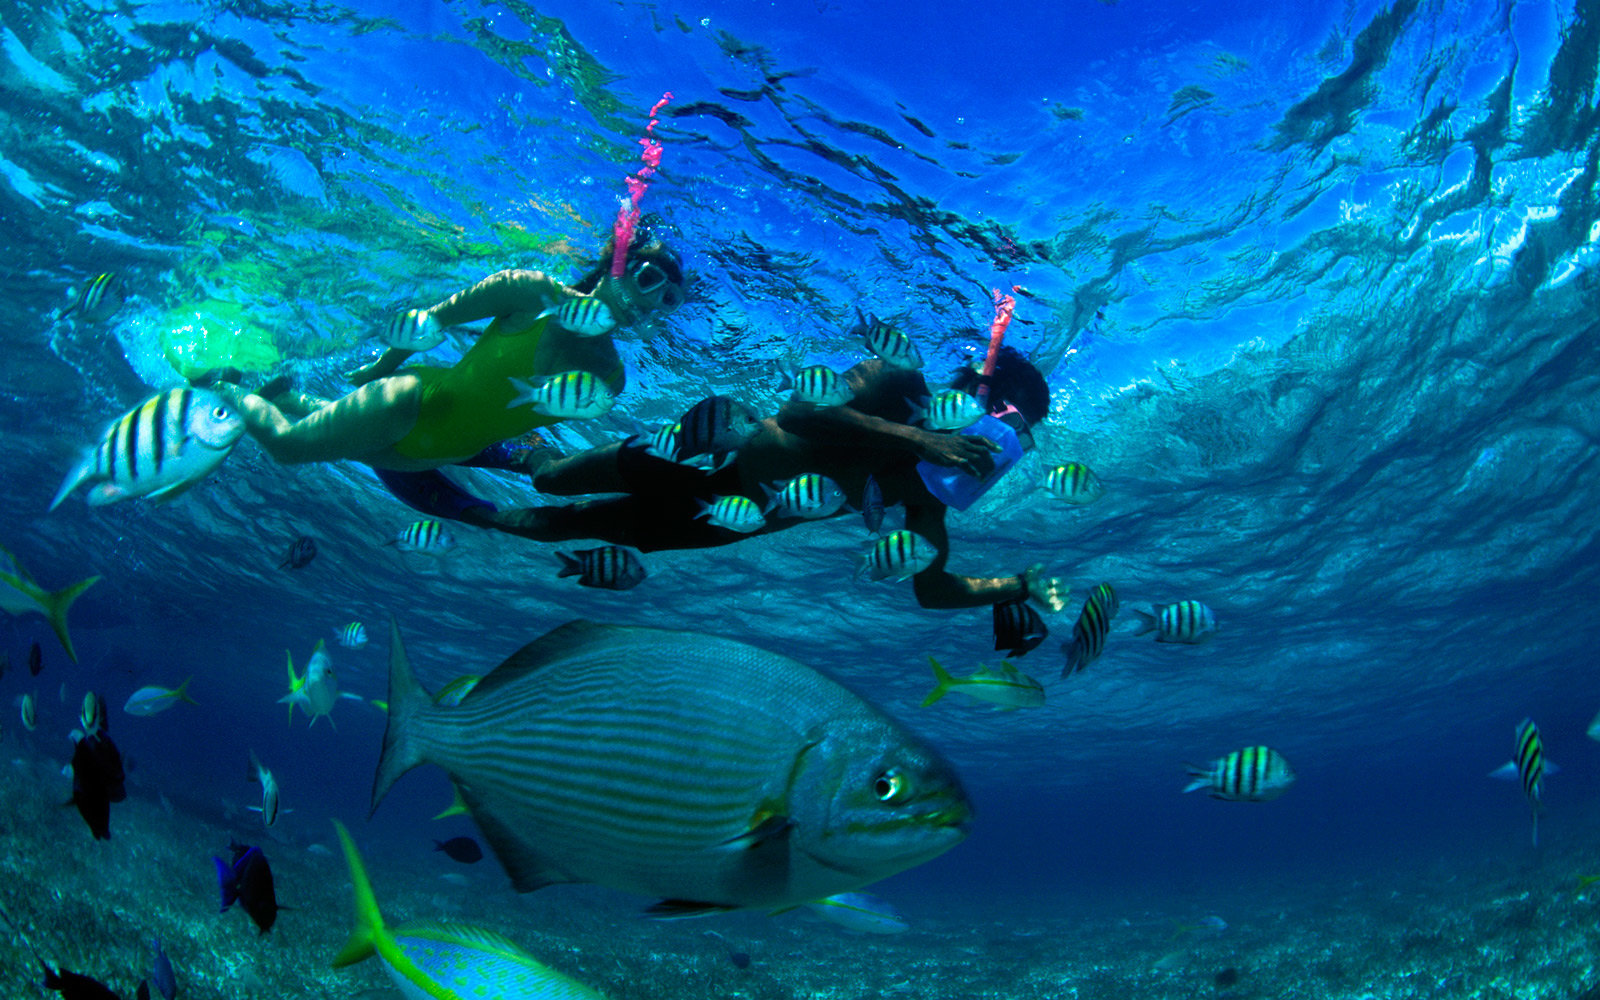 Two people snorkelling in blue water near tropical fish.